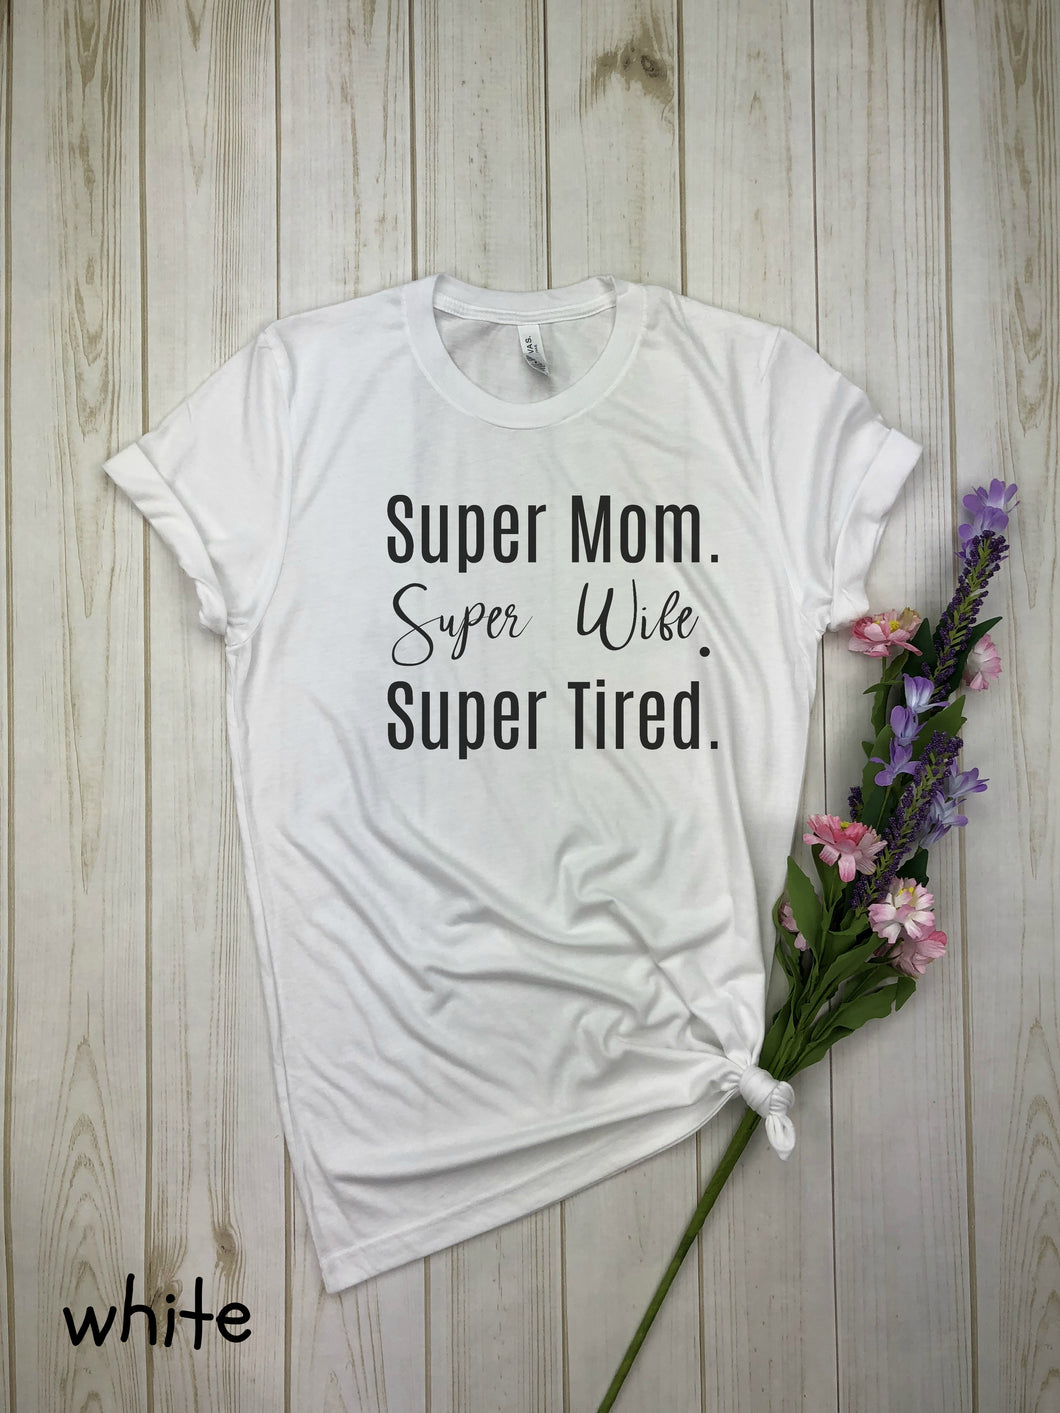 Super Mom, Super Wife, Super Tired is the perfect mom T-Shirt